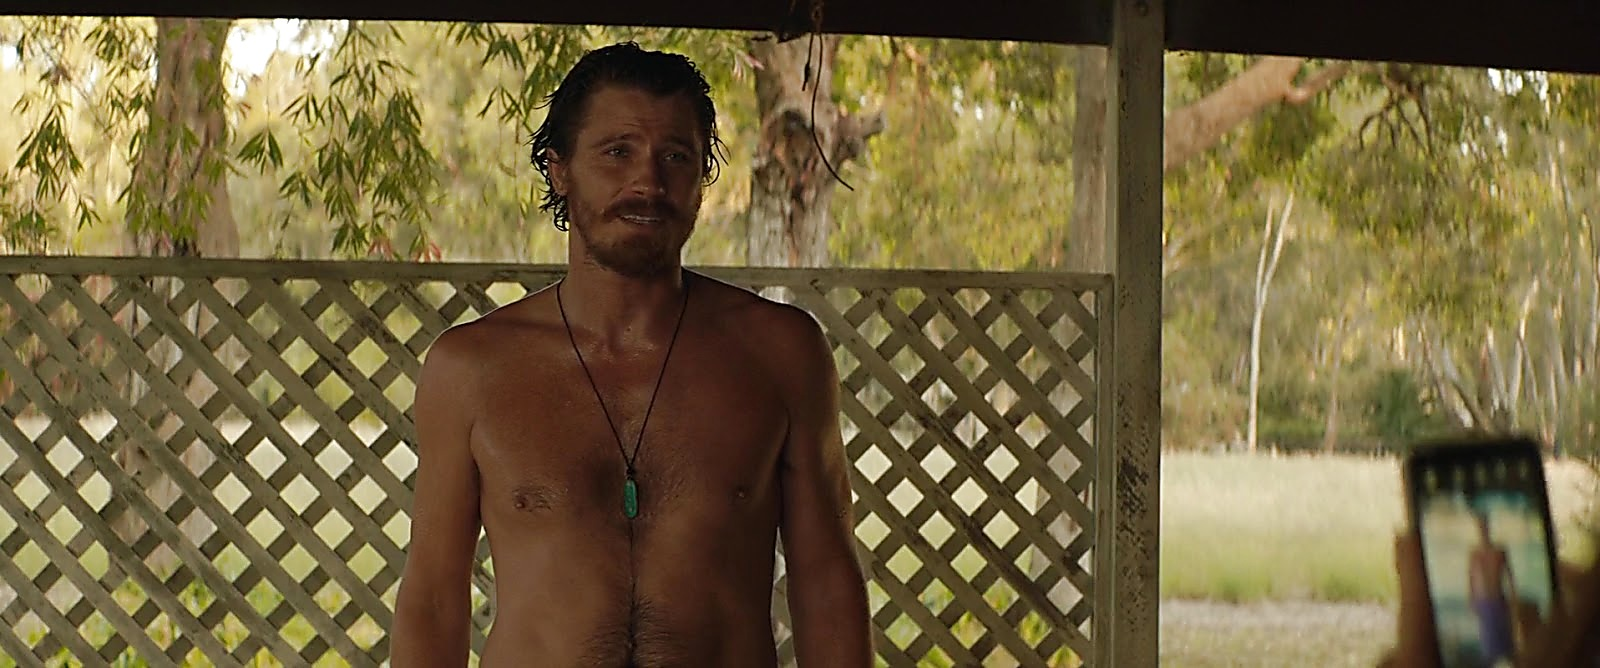 Garrett Hedlund sexy shirtless scene July 17, 2020, 3pm